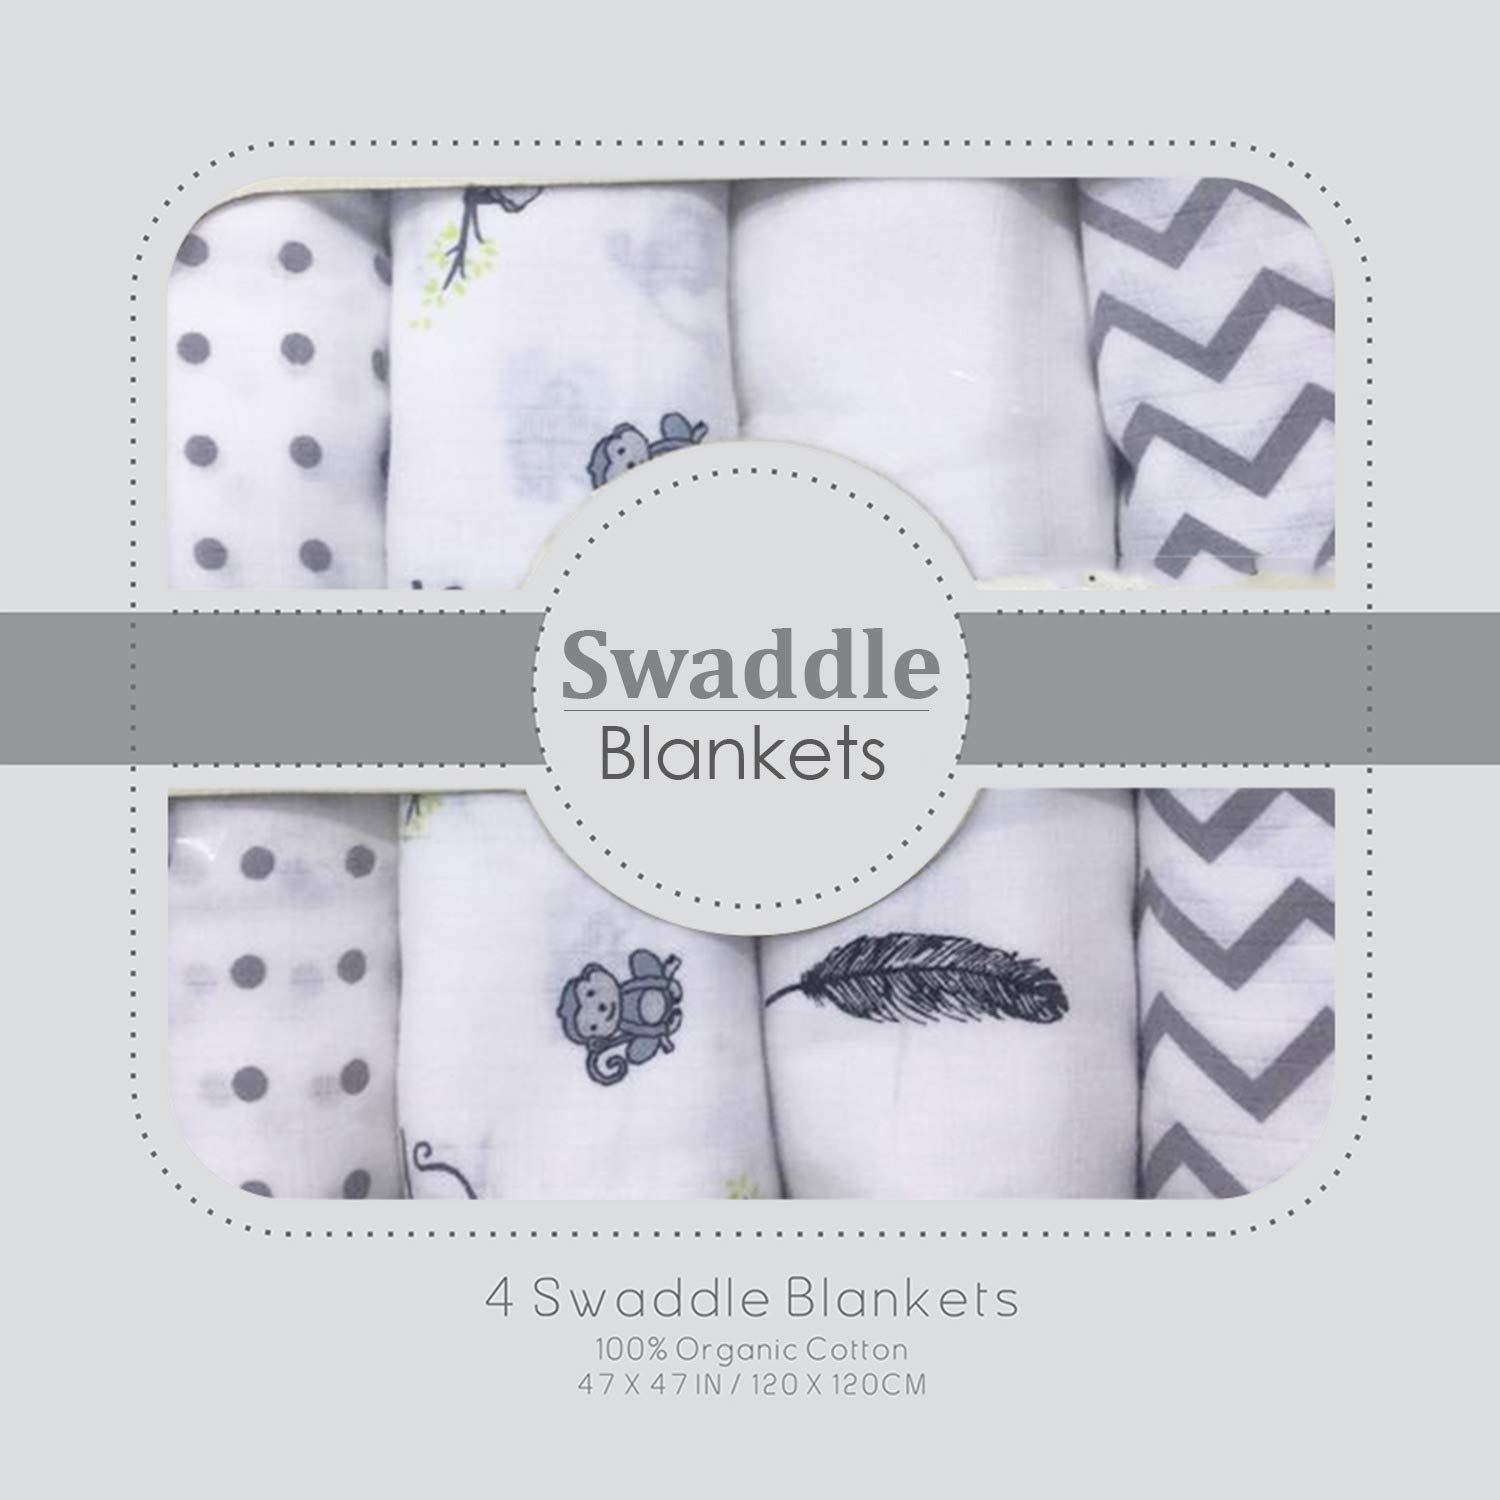 Muslin Swaddle Blankets – Soft Silky 100% Muslin Cotton Swaddle Blanket for Baby, Large 47 x 47 inches, Set of 4- Zig Zag, Polka, Wing & Monkey Print in Grey Pattern